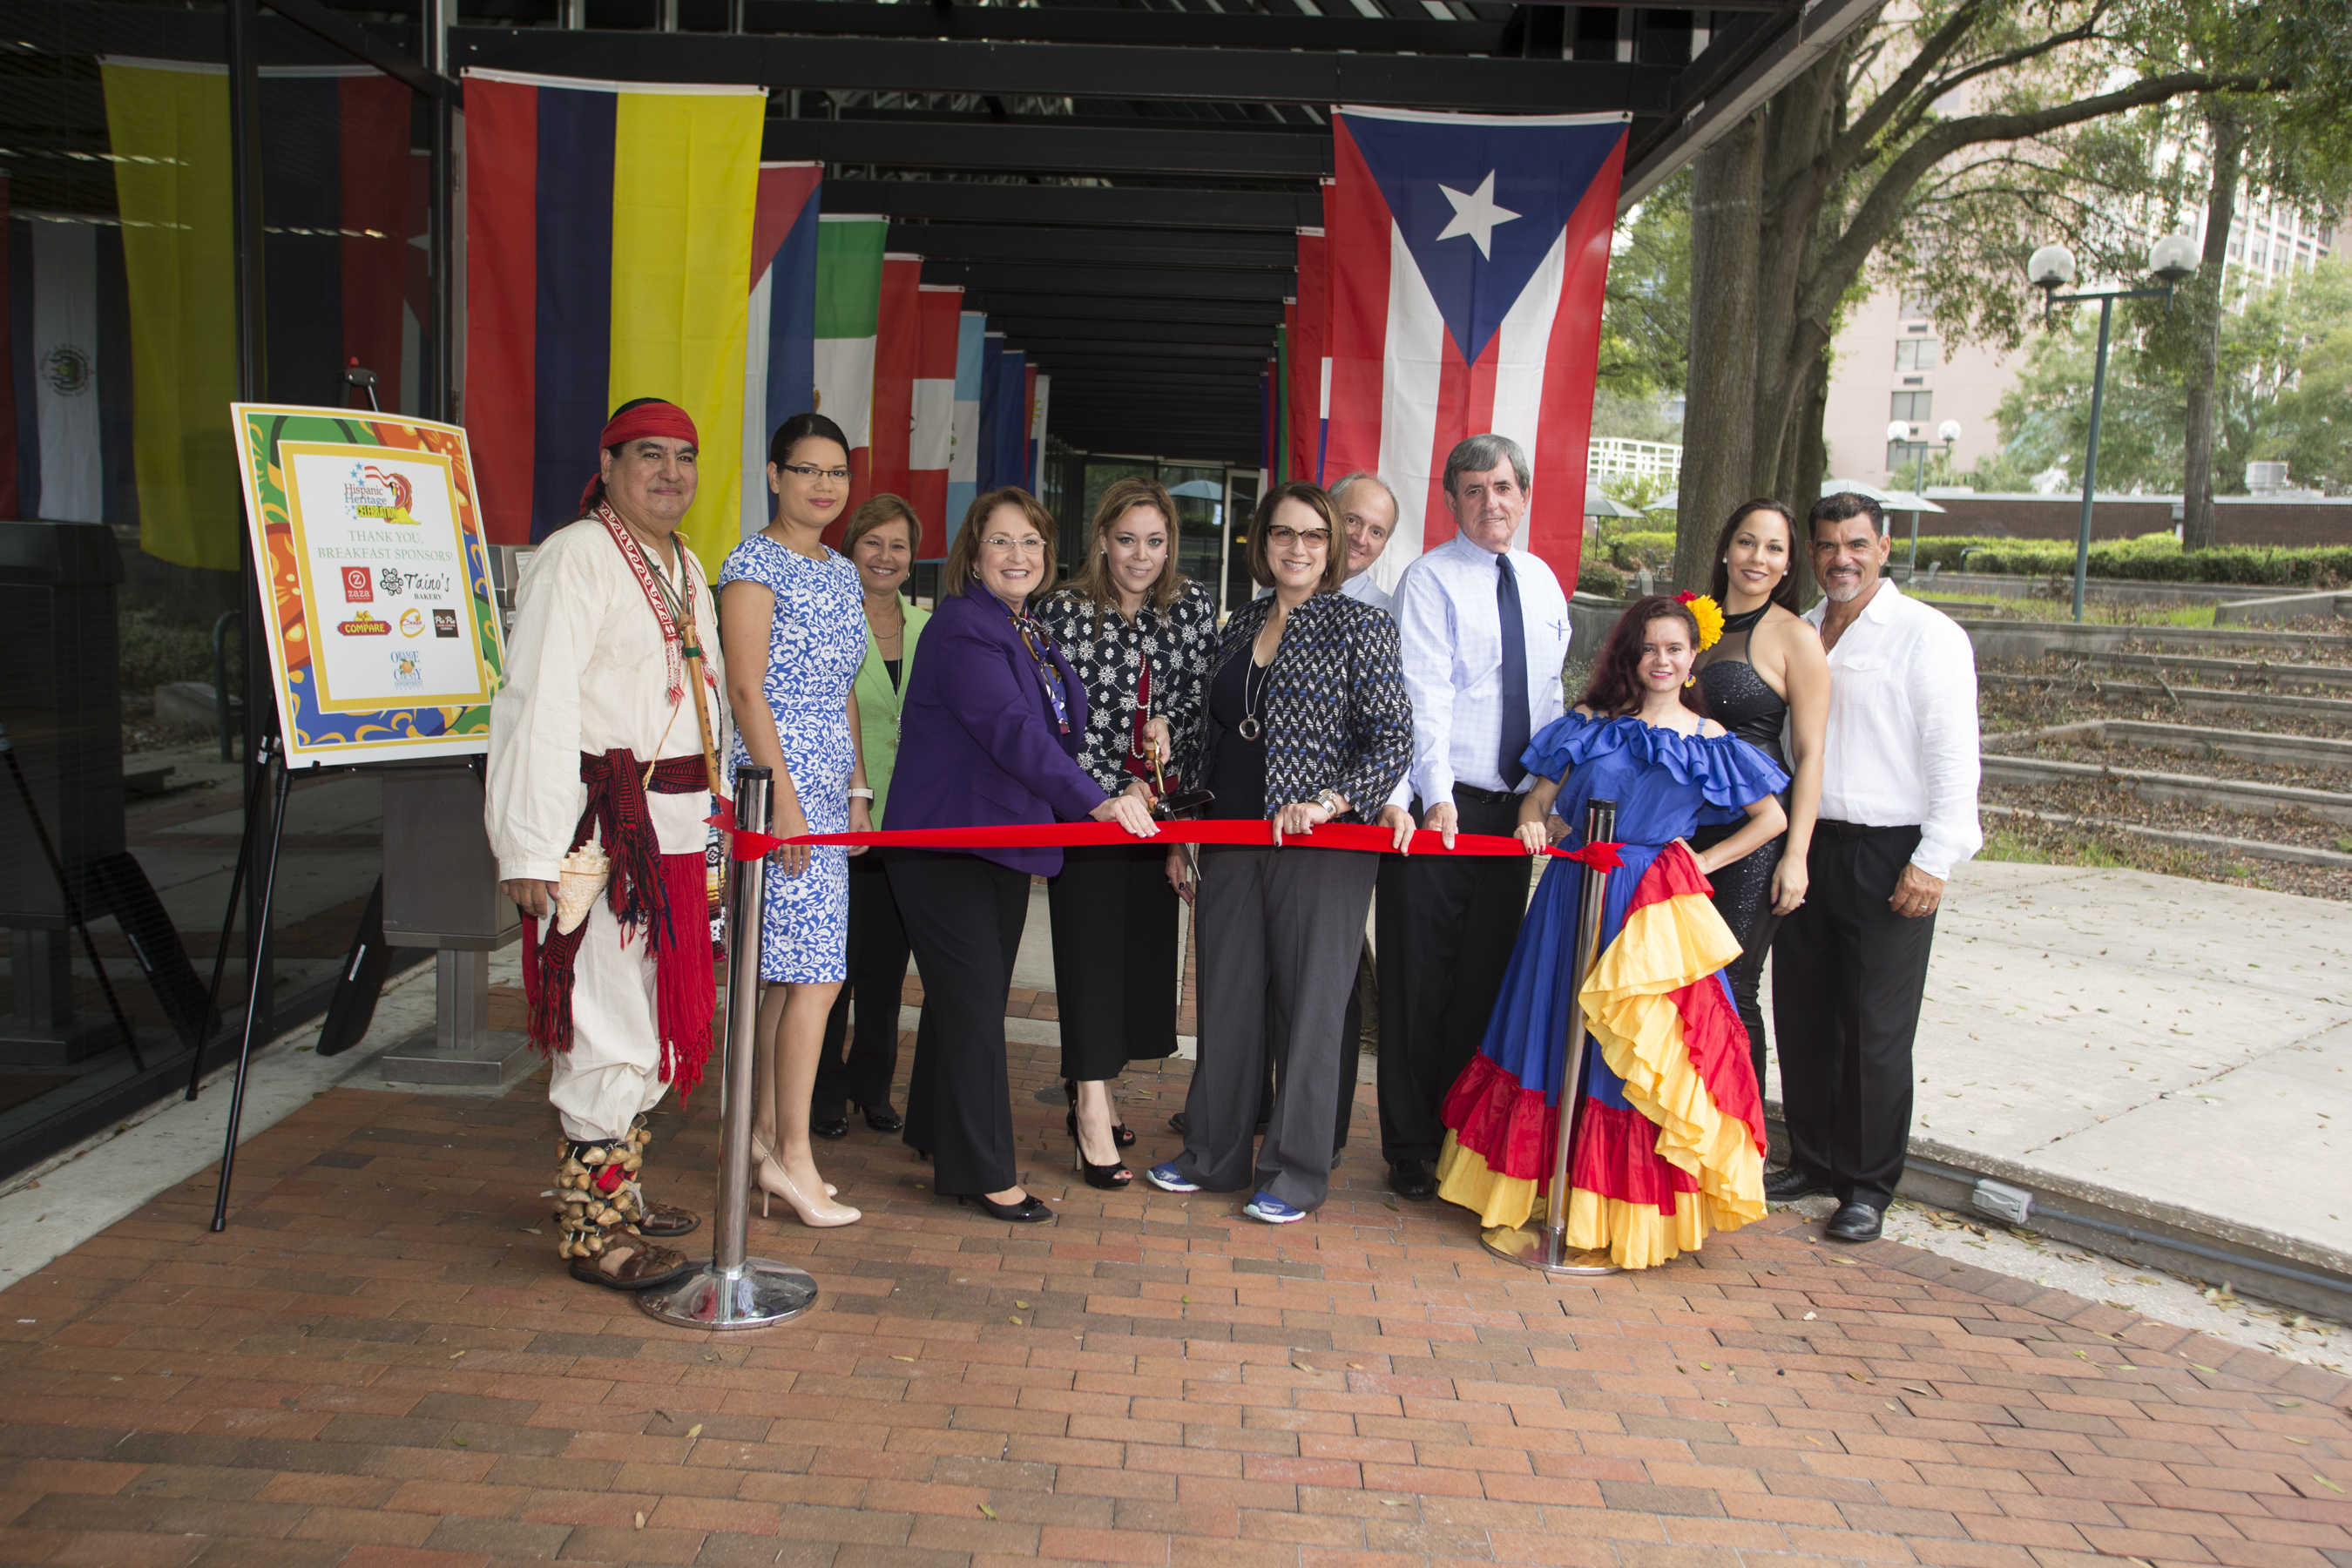 Ribbon cutting for Hispanic Heritage Month celebration